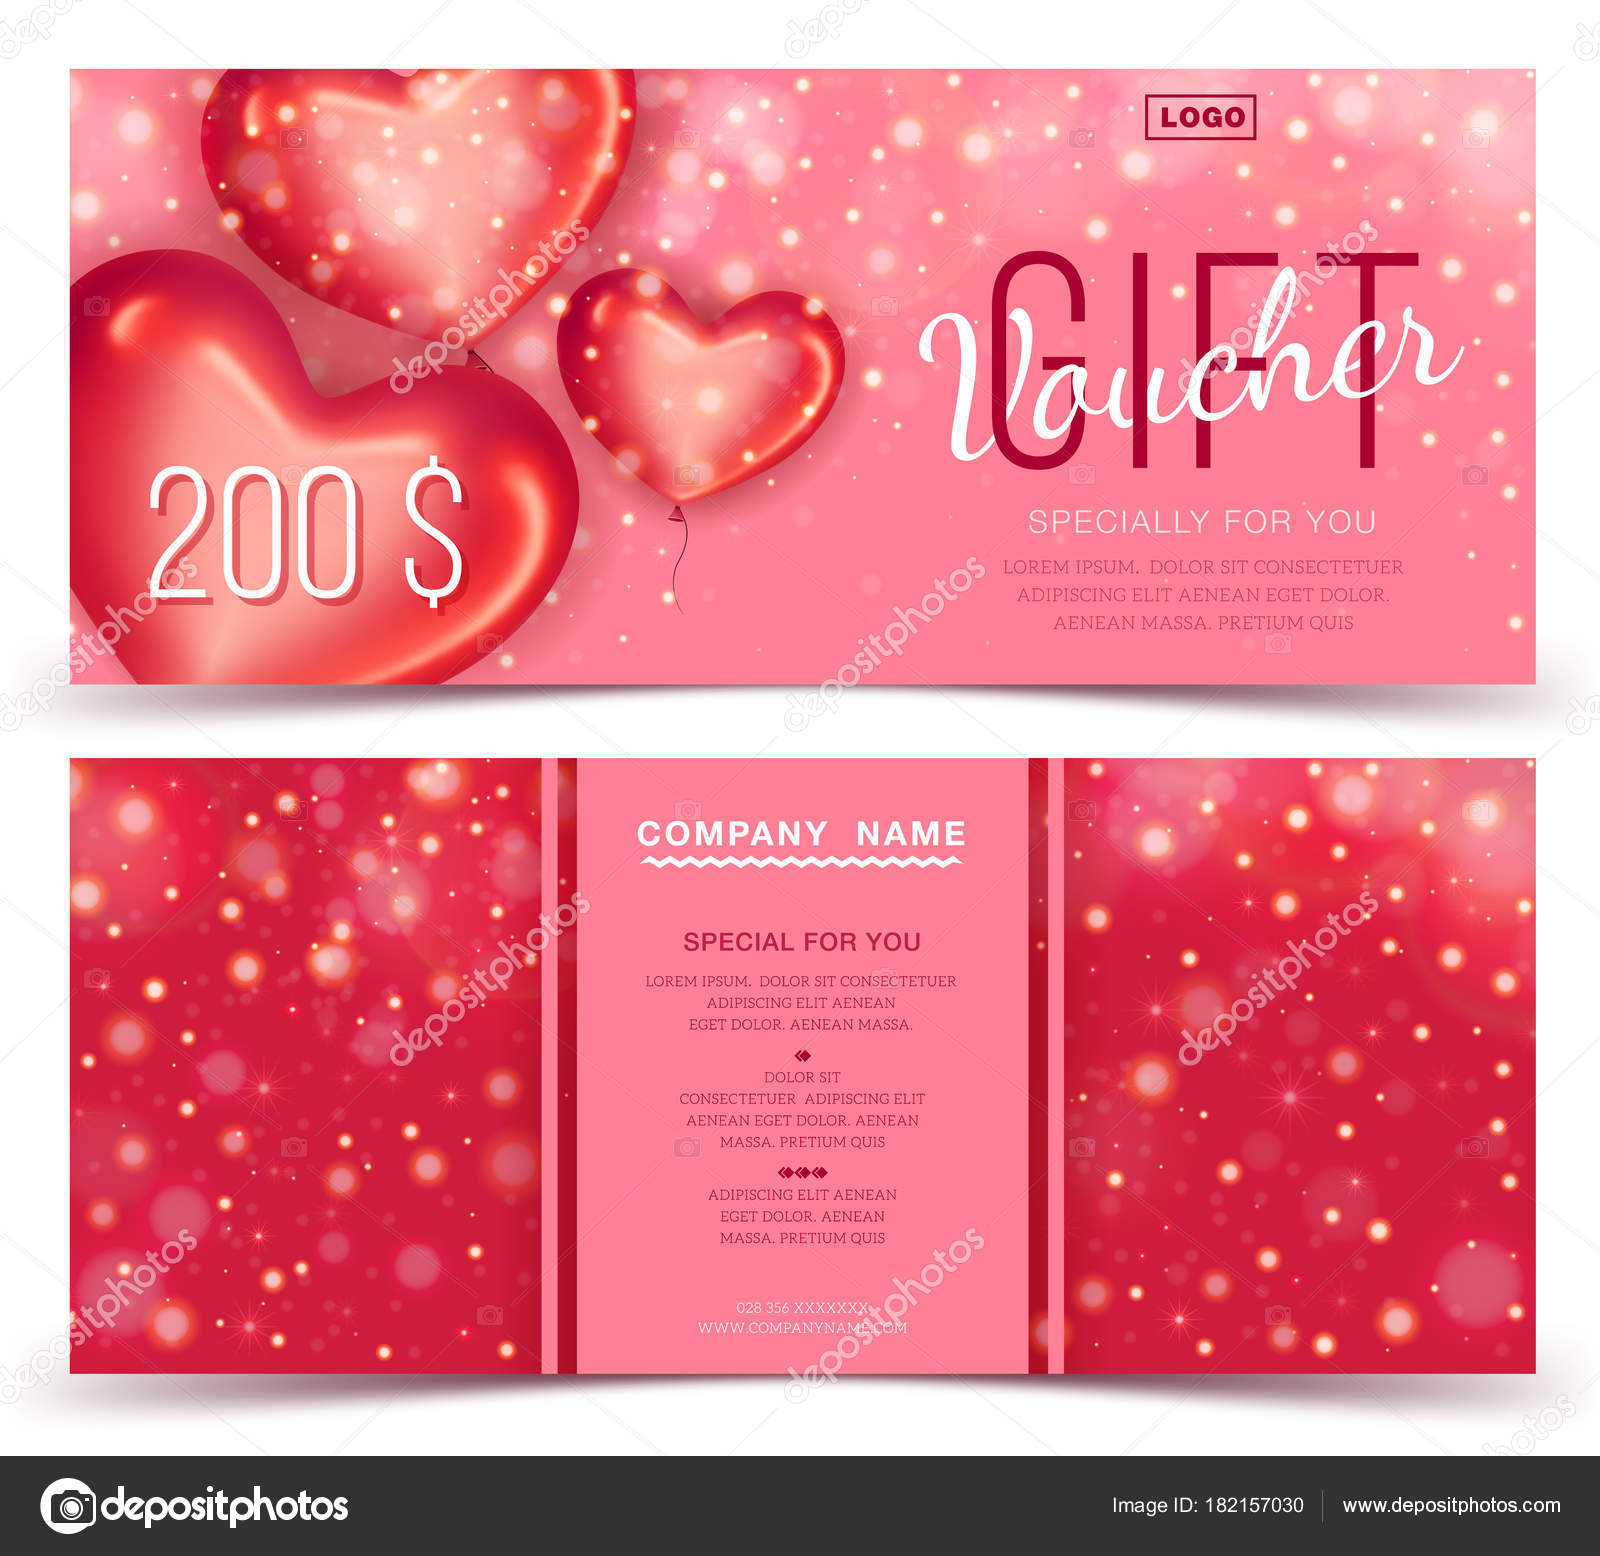 gift voucher template with red hearts 200 concept for gift coupon